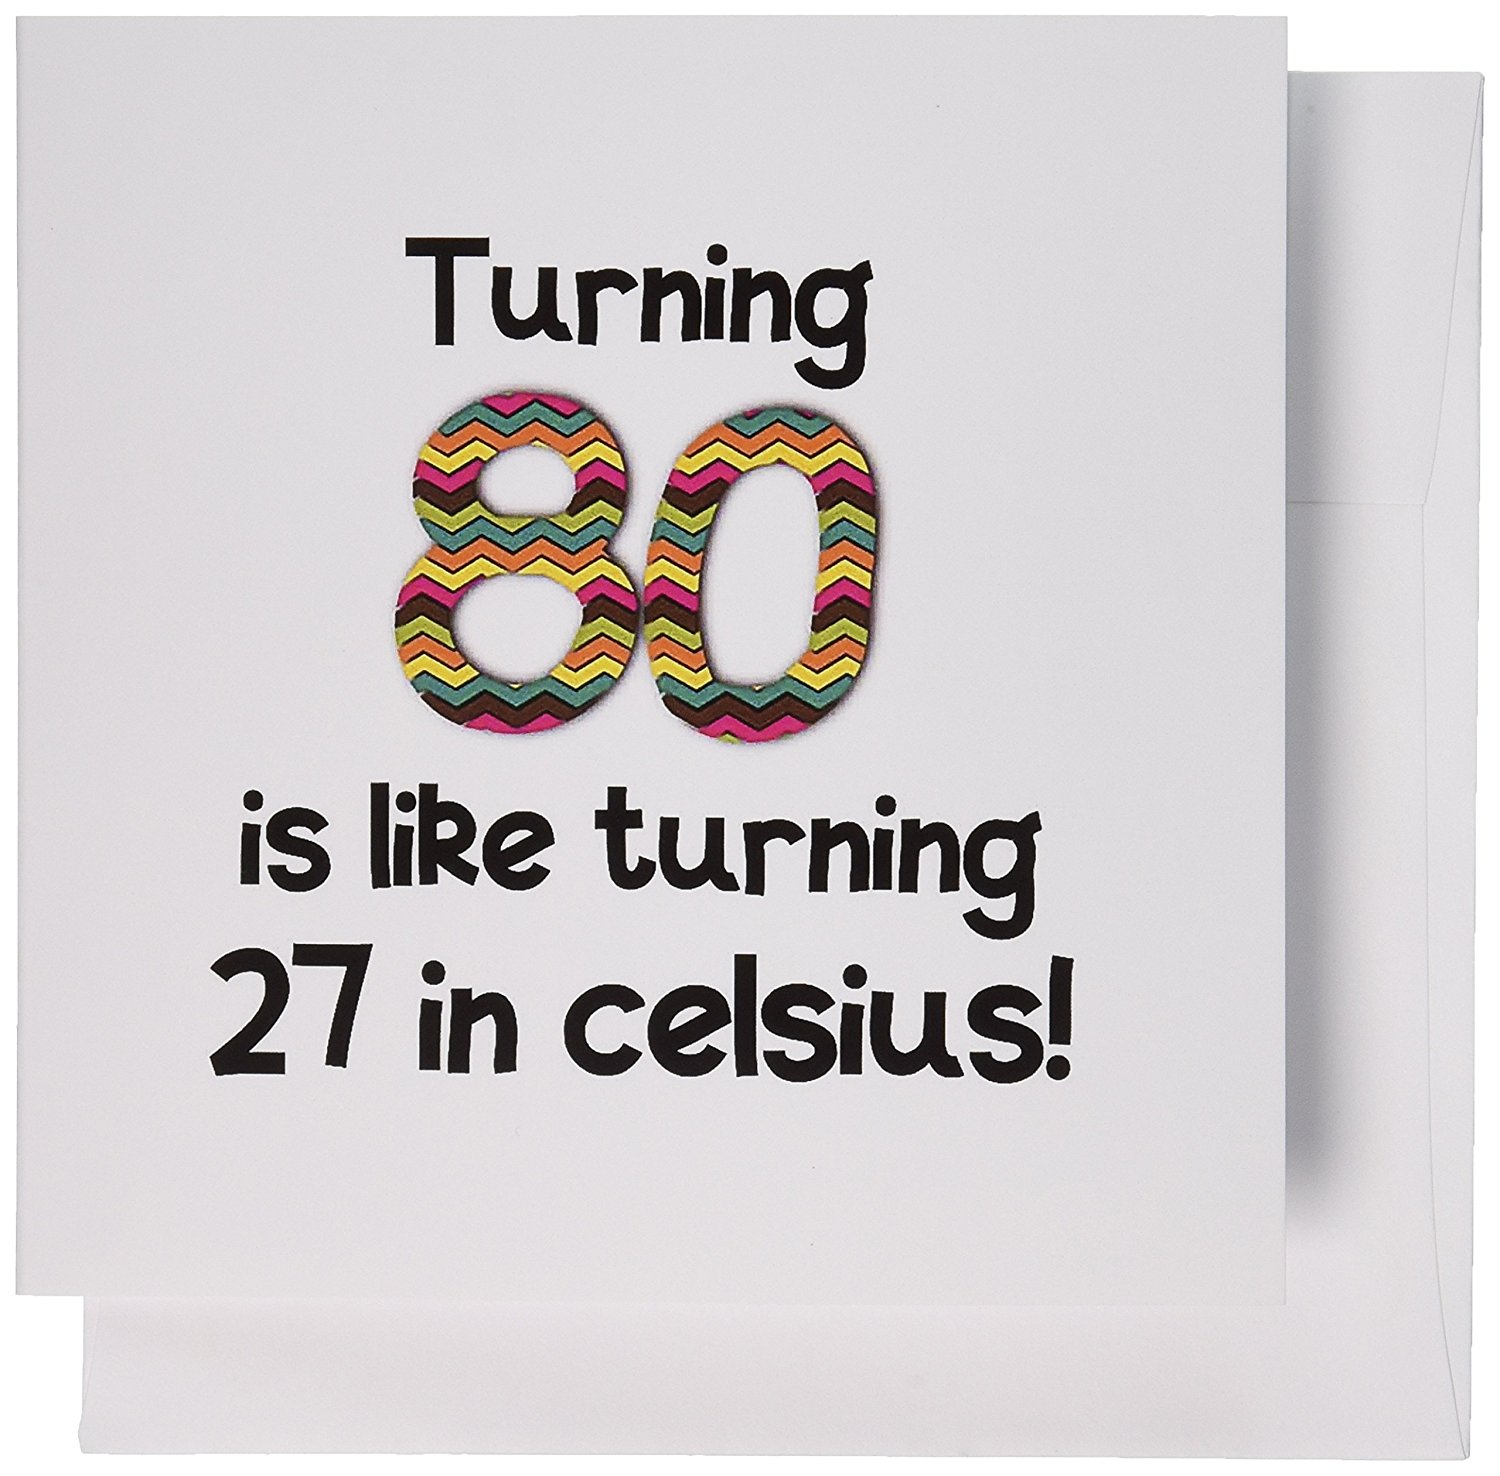 Cheap 80th birthday cards find 80th birthday cards deals on line at get quotations 3drose turning 80 is like turning 27 in celsius humorous 80th birthday gift greeting m4hsunfo